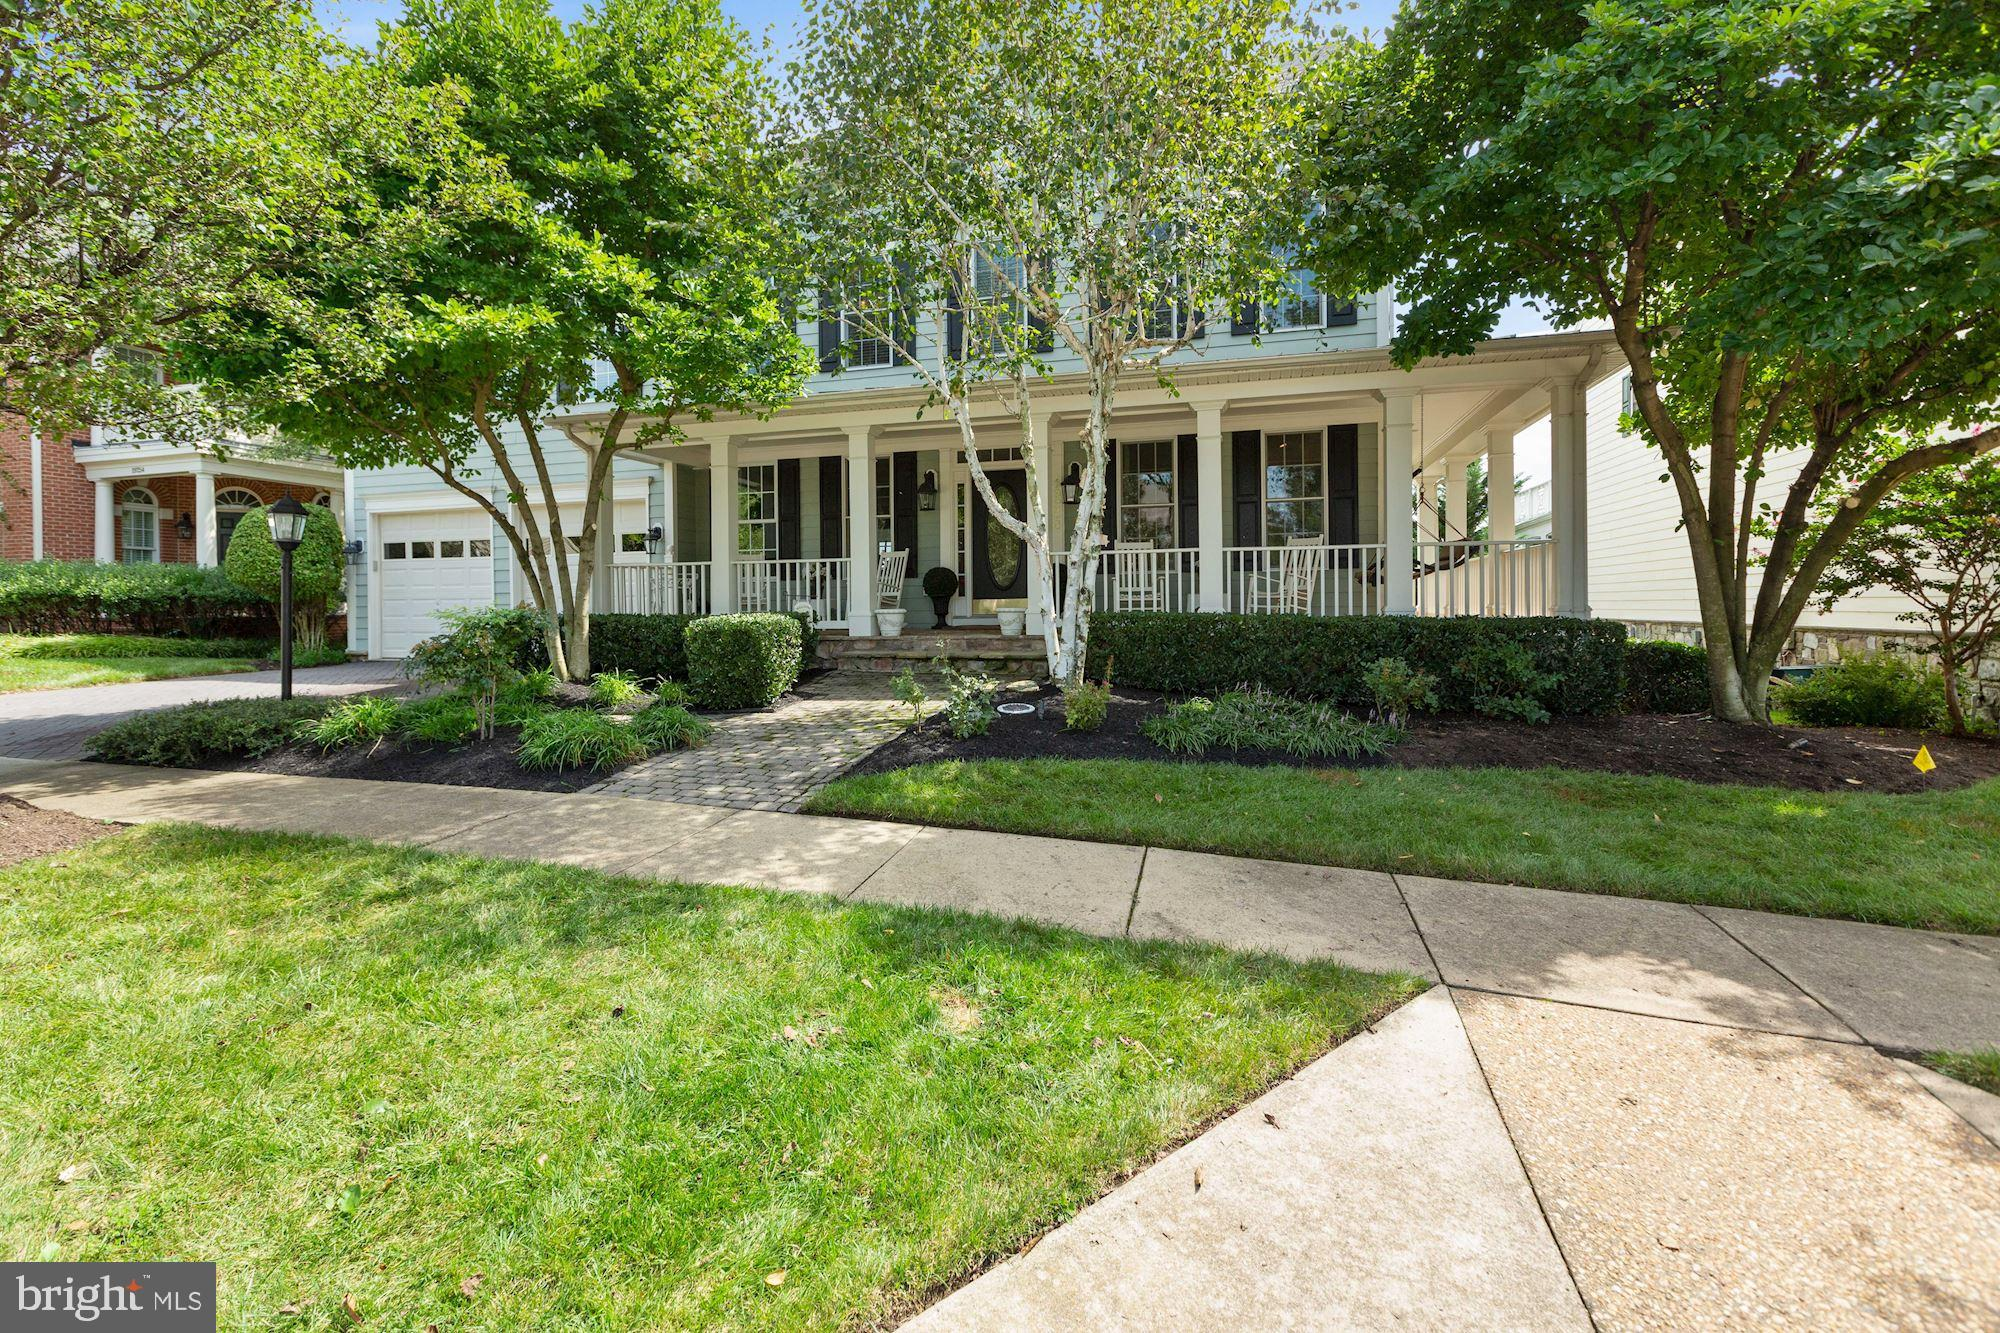 **Open House Sunday September 6th from 1-3 P.M.** This amazing property was the original Van Metre Model Home with every bell and whistle possible.  The paver-lead walk and custom landscaping welcome you to the inviting wrap around front porch.  The rear yard features the best golf course view in Lansdowne with a Trex deck, screened in porch, extensive stone patios, an incredible gold fish pond with custom bridge.  The estate's interior features over 5,600 finished square feet featuring opulent formal spaces with wide plank hardwood floors with custom tile inlay. There are 4 fireplaces in the living room, family room, recreation room and owner's suite.   All four bedrooms include spacious closets and Bedroom 4 with an en-suite bath.   All baths feature upgraded tile and upgraded cabinets and fixtures. The Owner's bath is freshly updated and includes his and hers walk-in closets and abundant natural light. The completely finished lower level includes a spacious Recreation Room, Billiards Room, Game/Play Room 5th Bedroom and full bath . This home has been lovingly maintained and very lightly lived in.  Nearly the entire home has been freshly painted.  Enjoy this award-winning community and its amenities and the most premium lot situated beautifully along the 9th hole of the RTJ golf course and views of hole 1 and 10.  This is a one of a kind and will not disappoint!